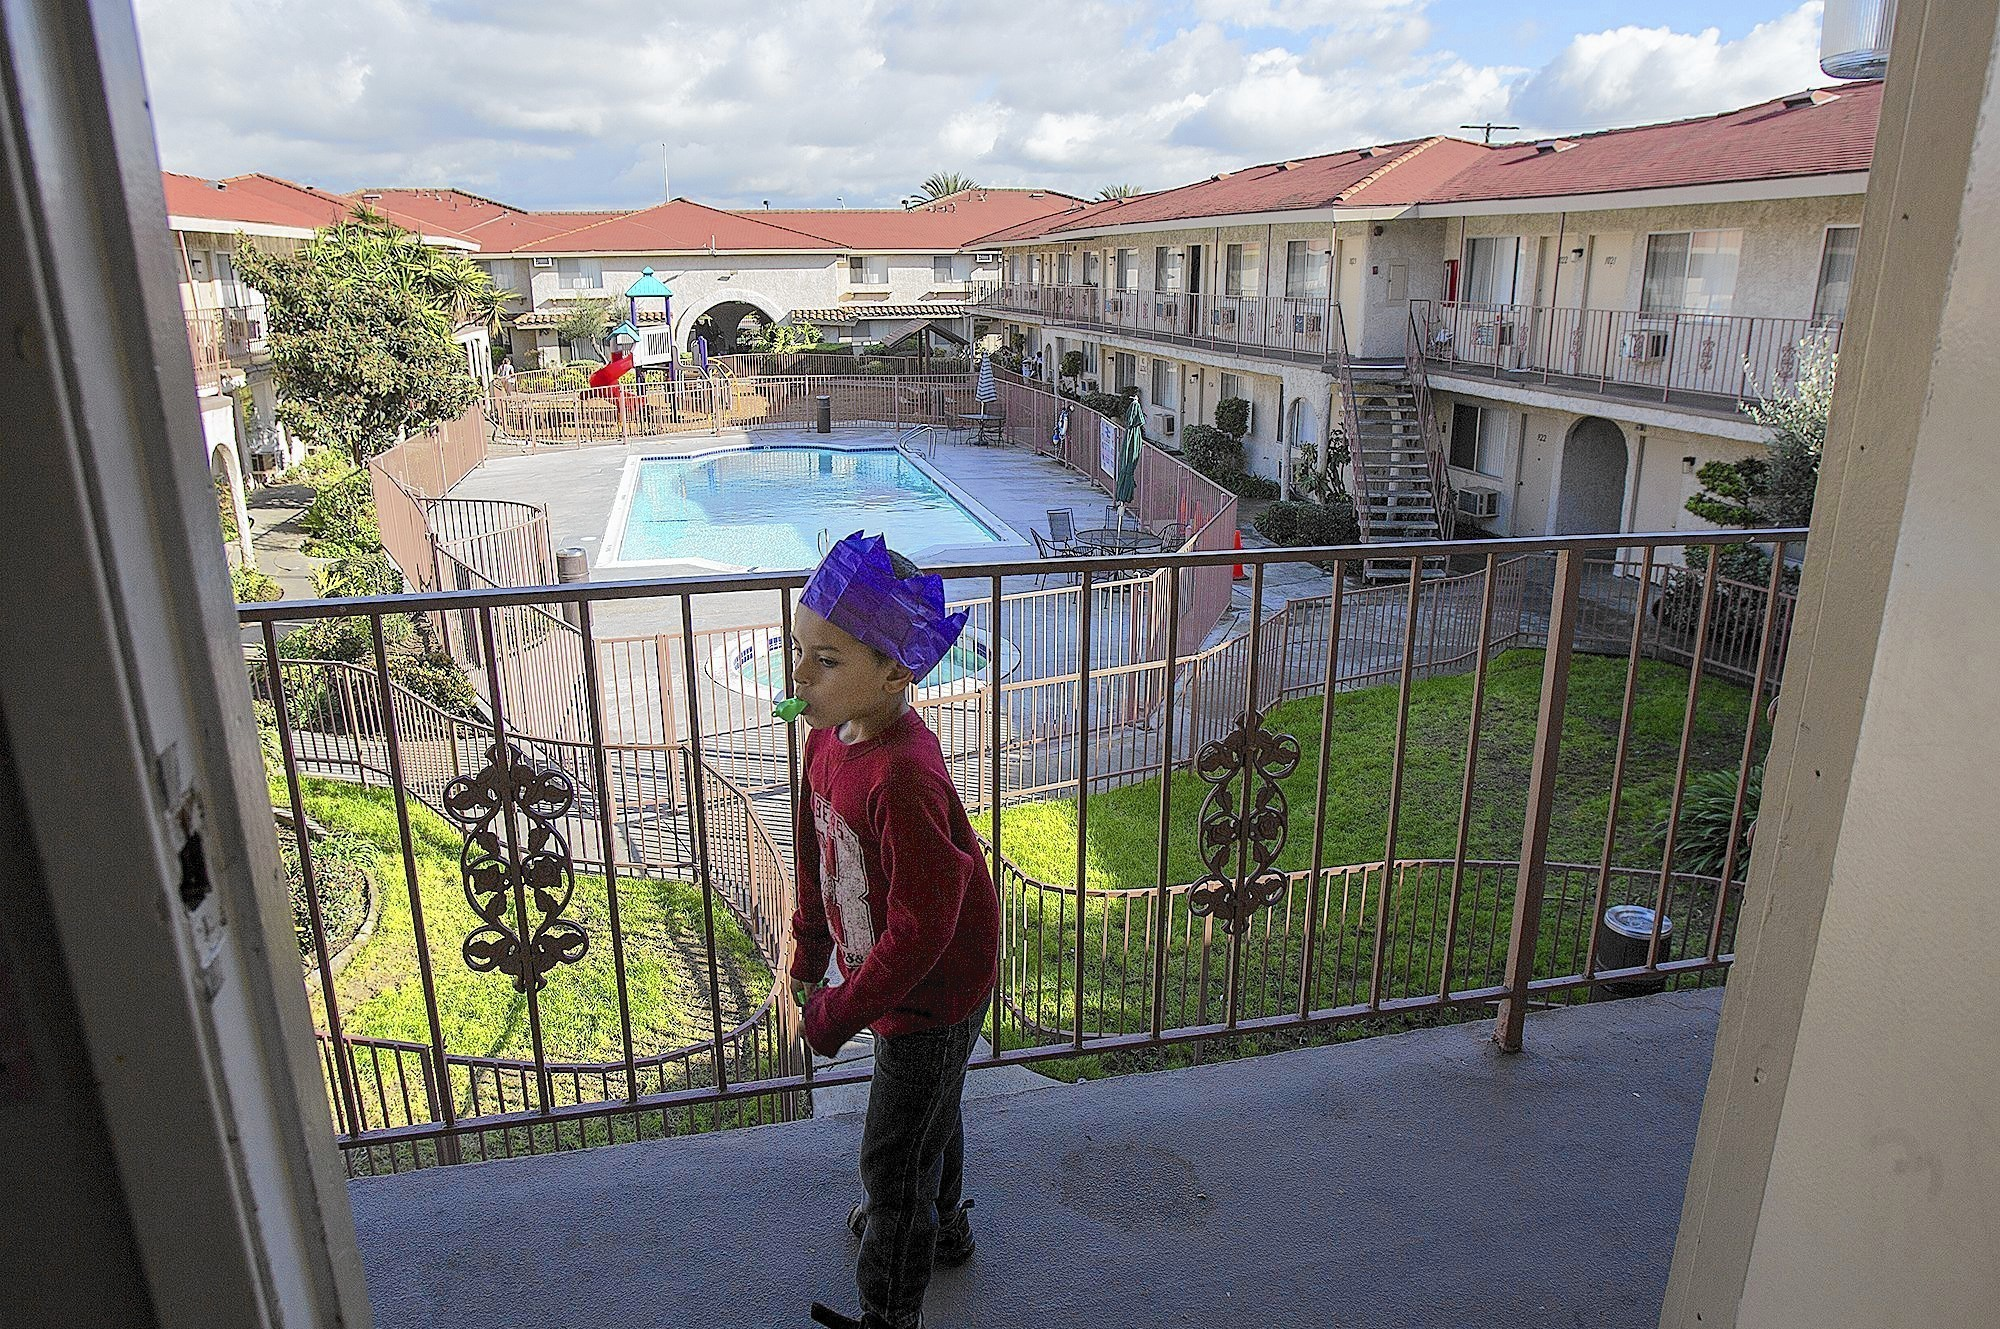 Planners Penalize Motor Inn For Health And Safety